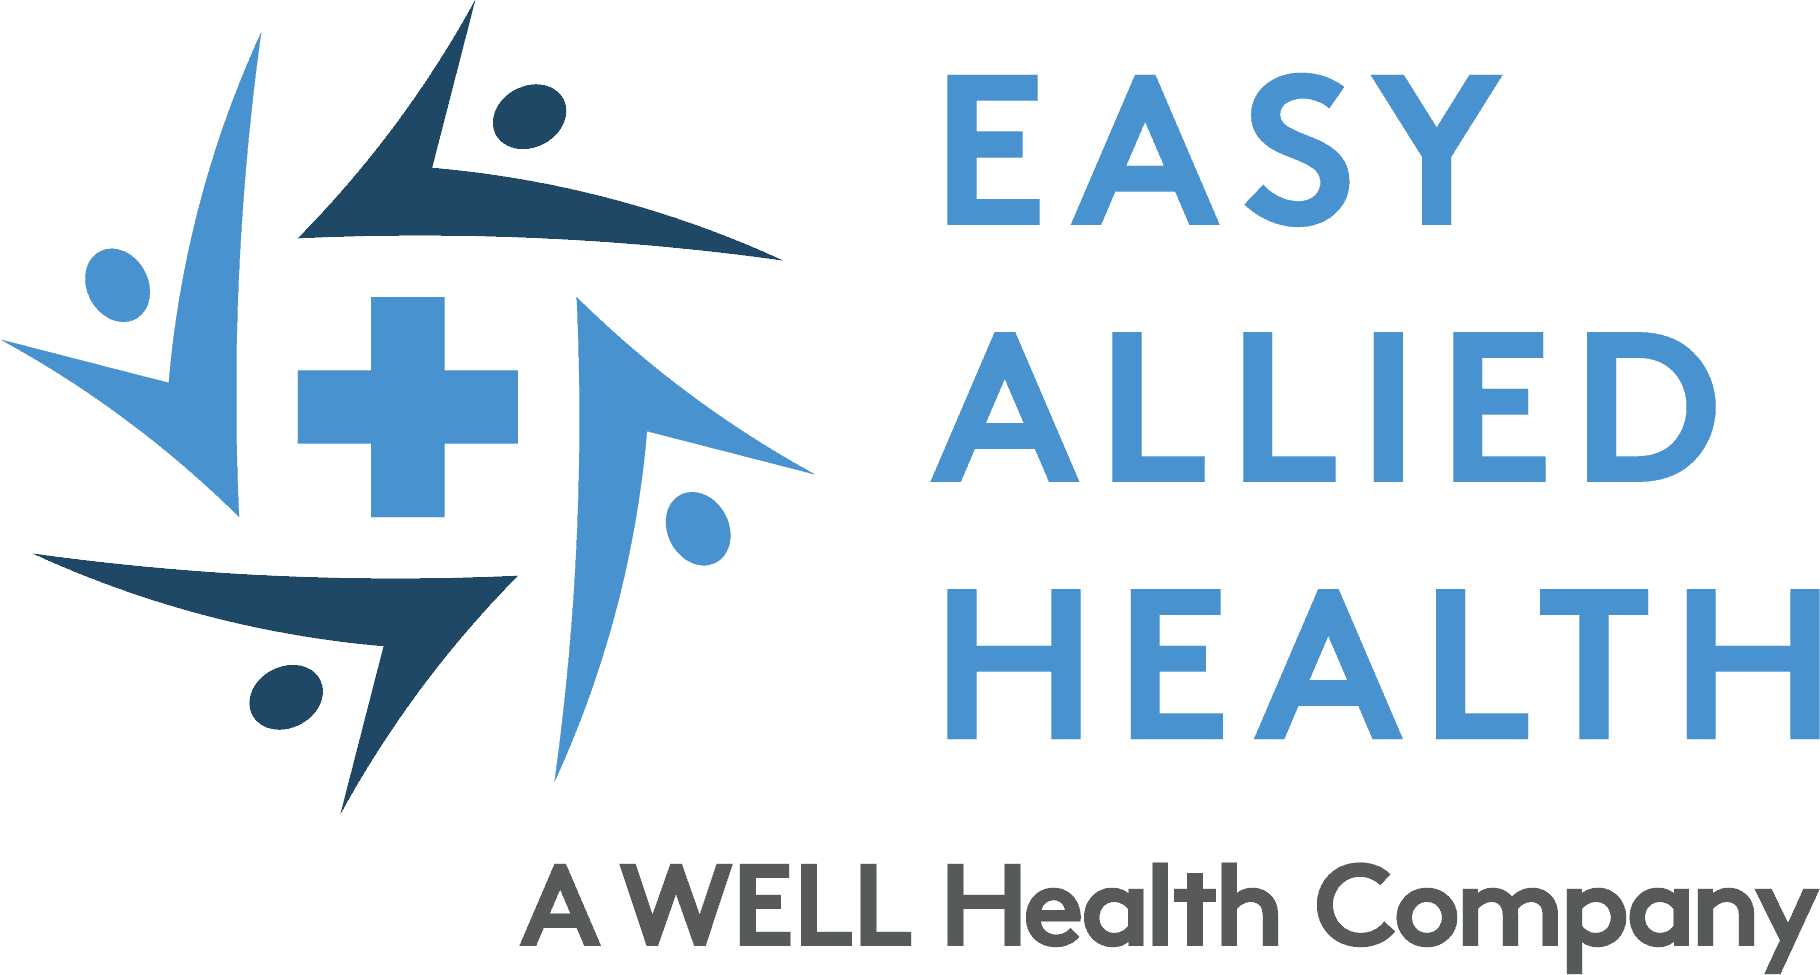 Easy Allied Health